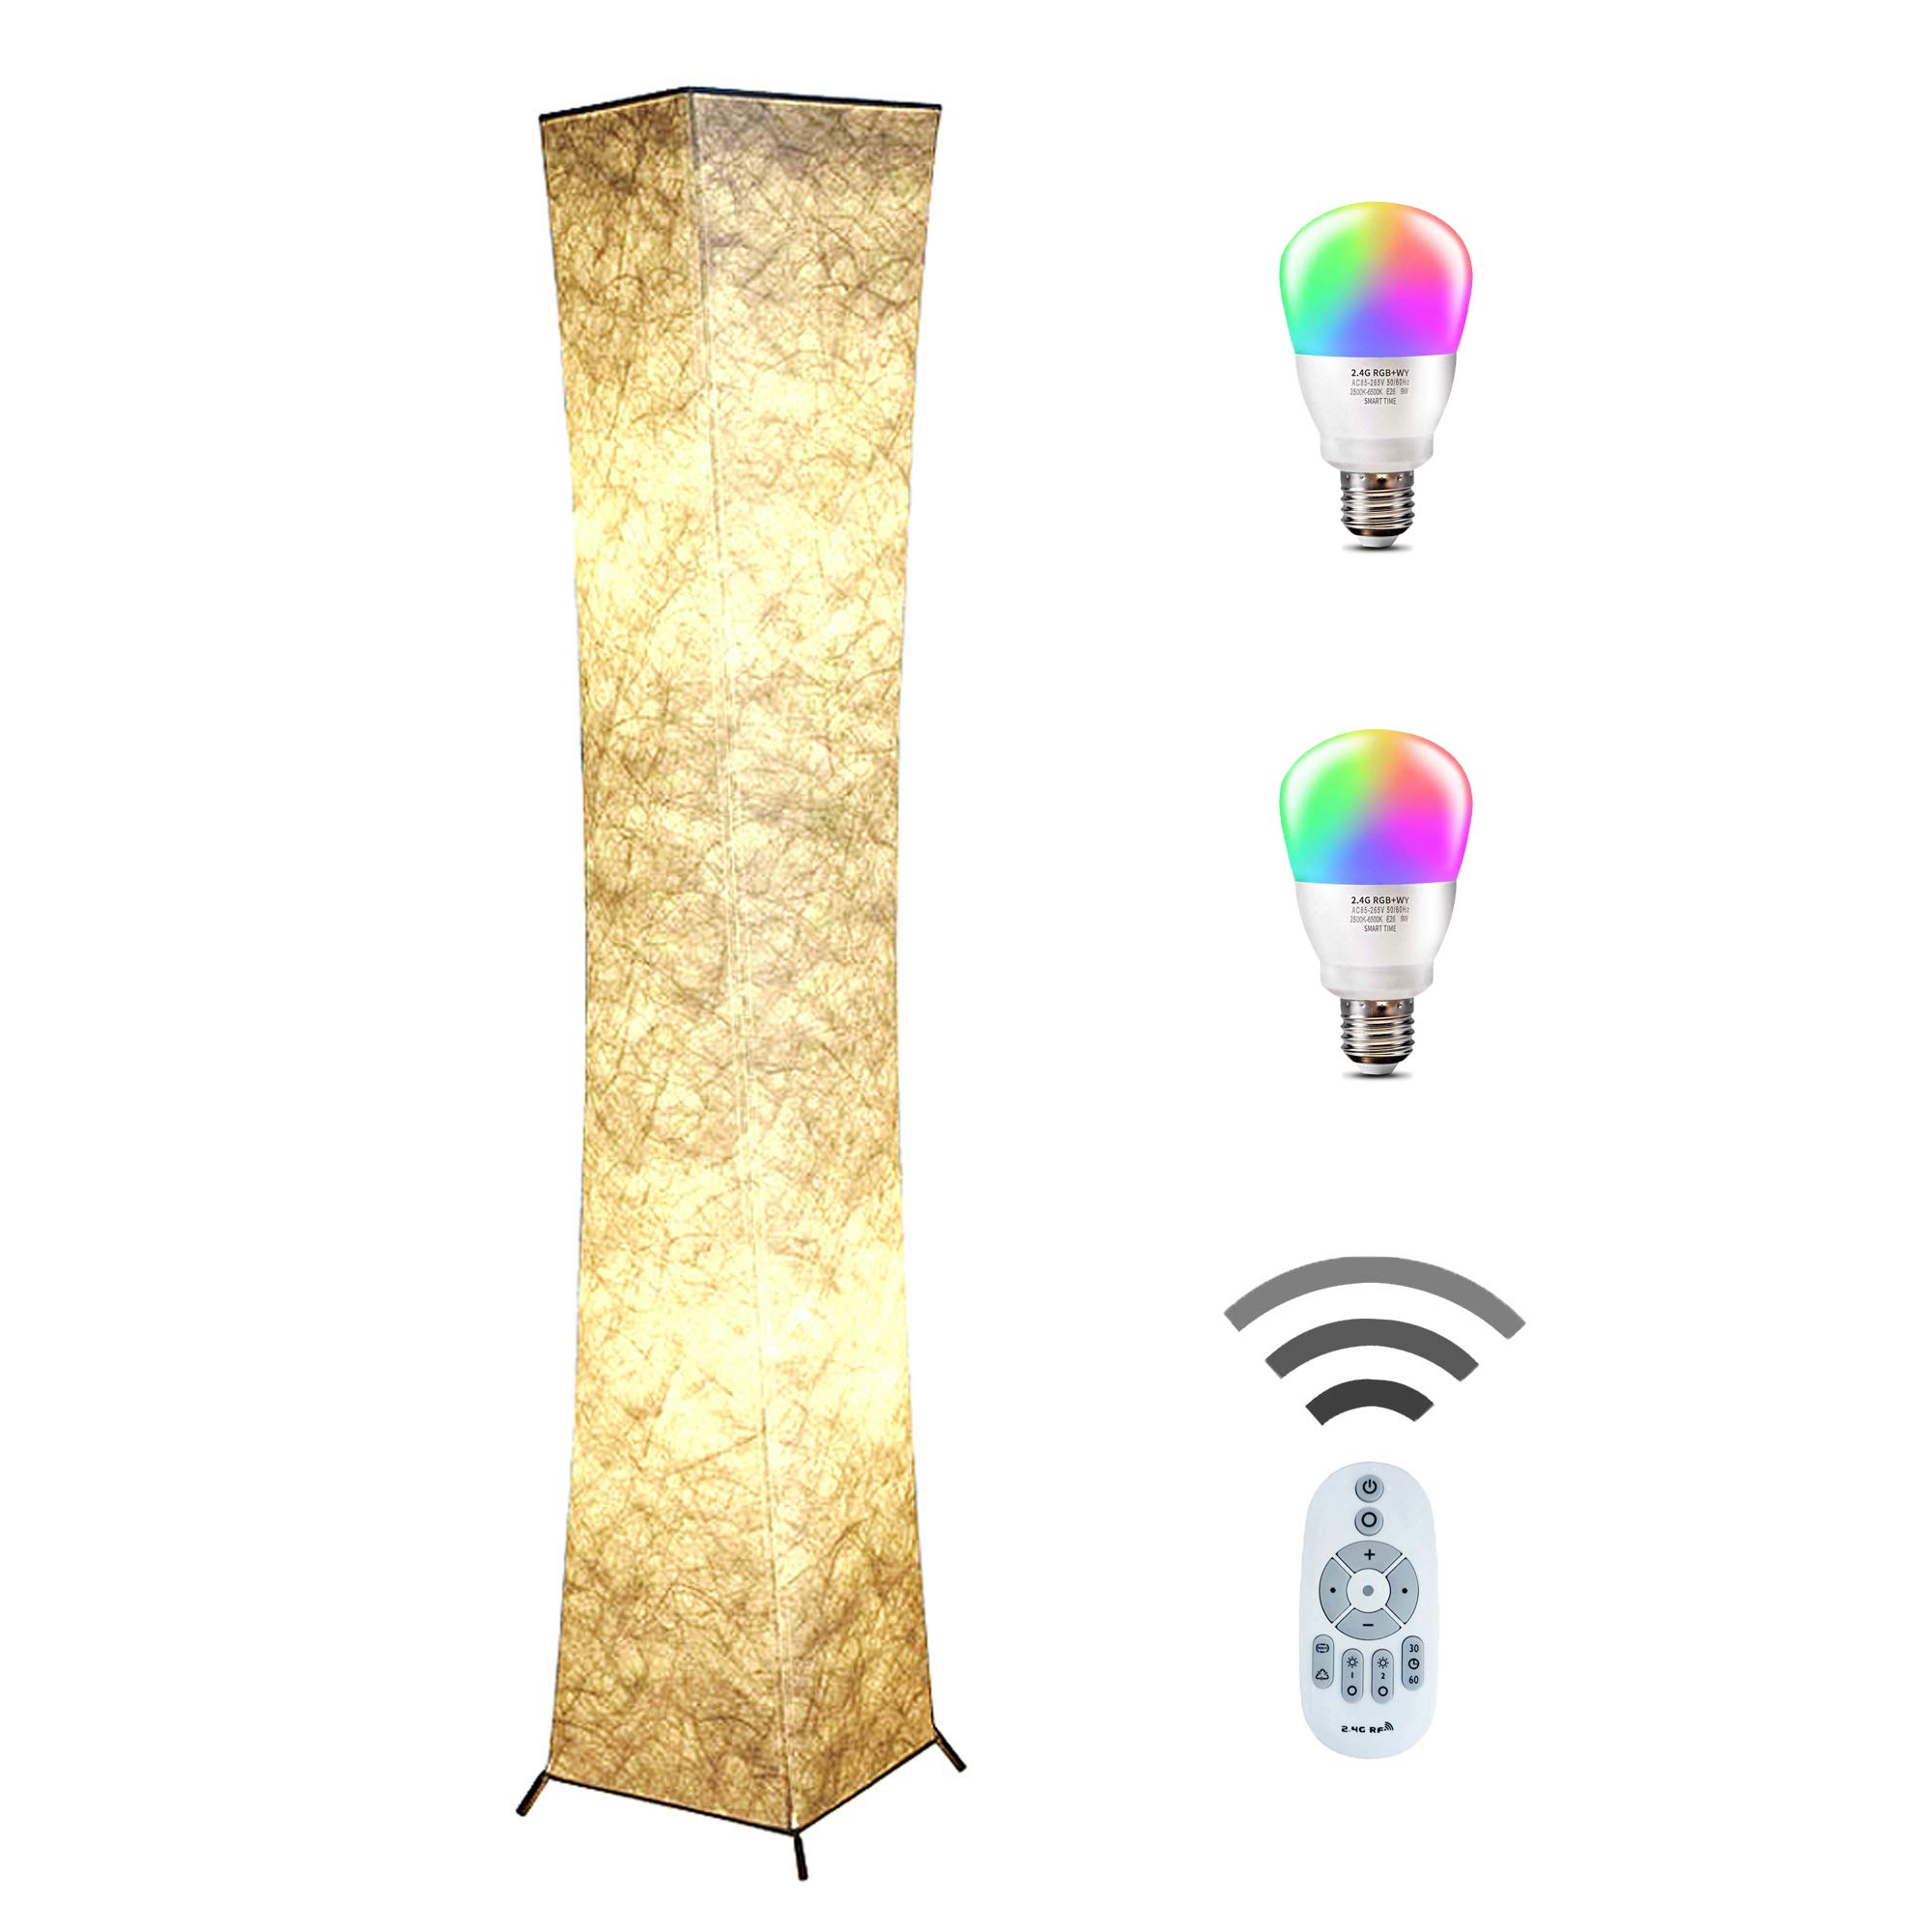 Floor Lamp, CHIPHY Tall Lamps, Color Changing and Dimmable Smart RGB LED Bulbs, Remote Control and White Fabric Shade, Modern Standing Light for Living Room, Bedroom and Office(10''10''61 inches)